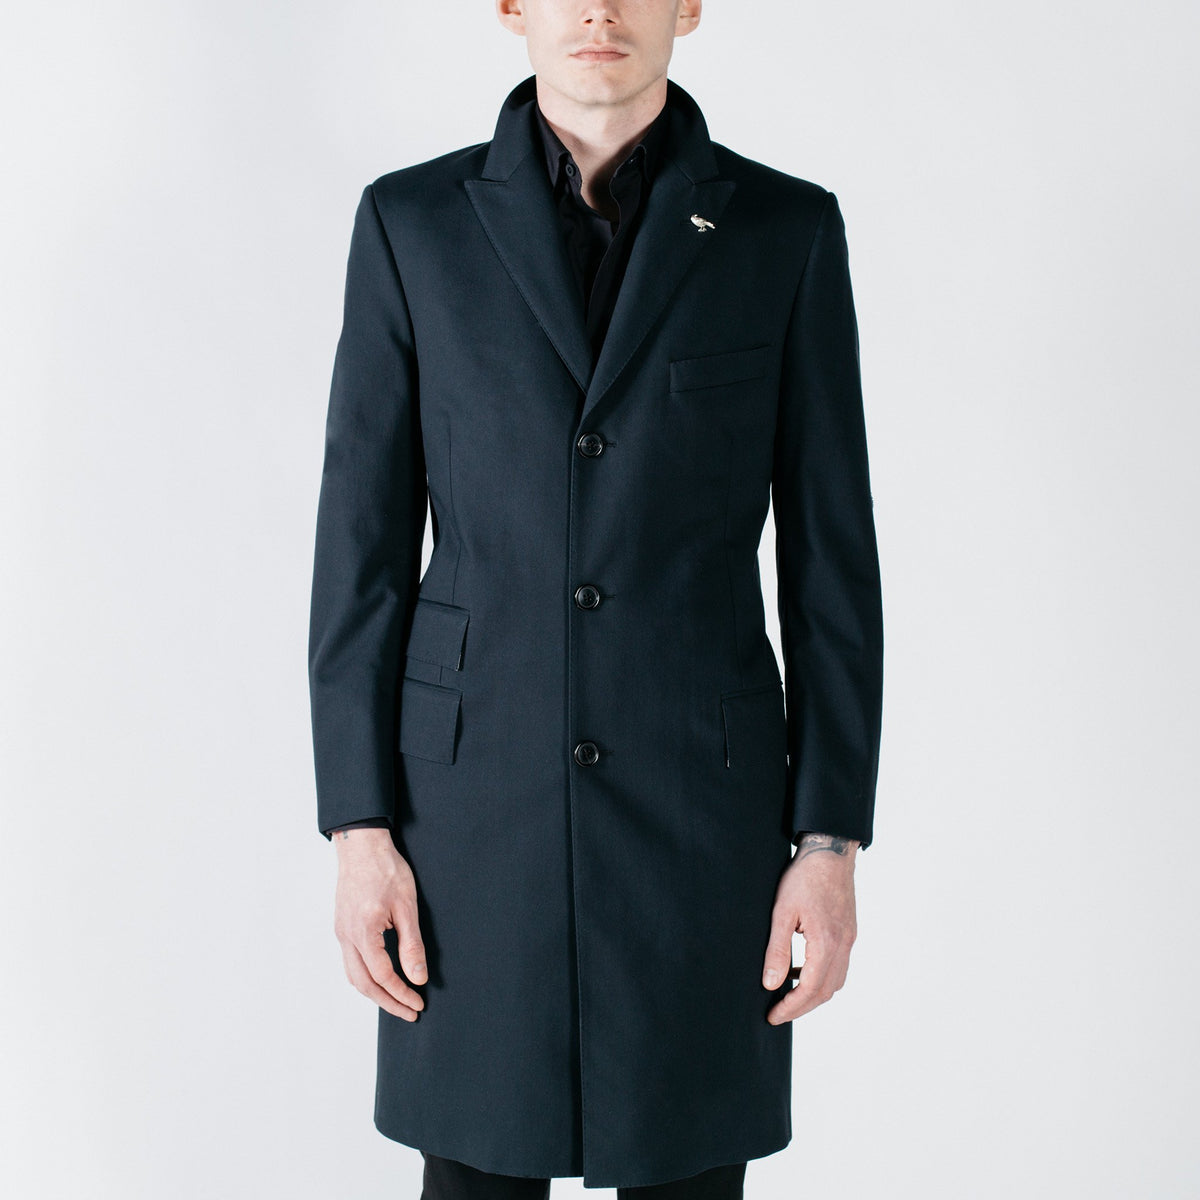 Stealth Raincoat - Black